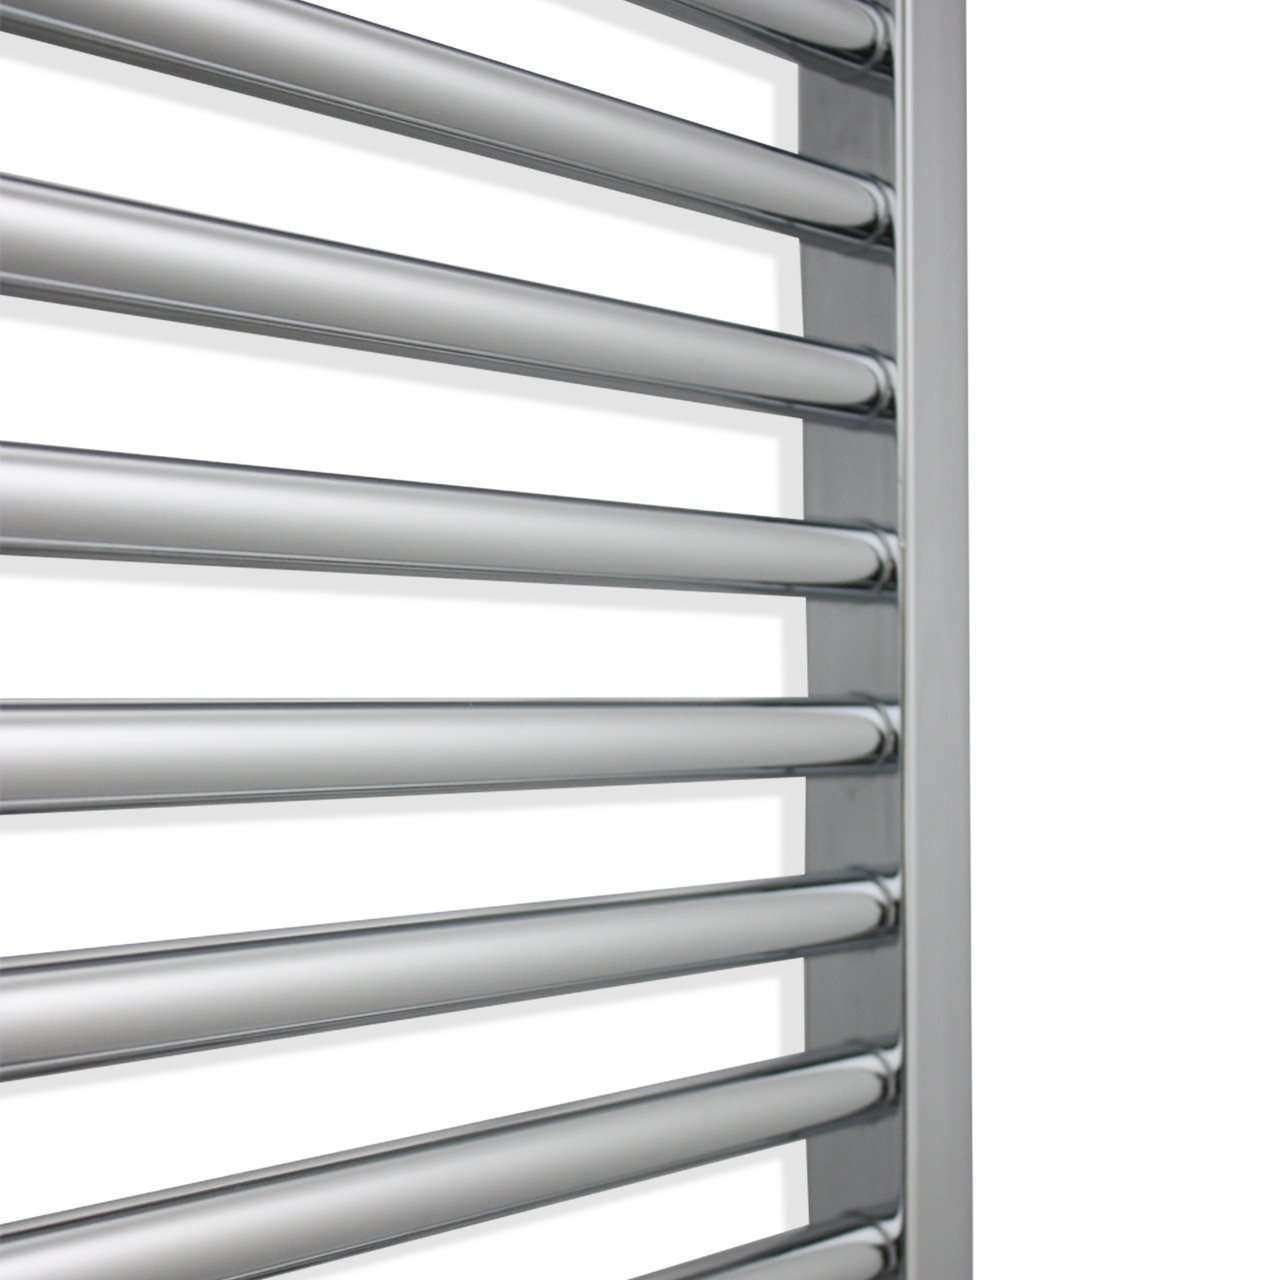 750mm Wide 1500mm High Straight Chrome Heated Towel Rail Radiator HTR Dual Fuel